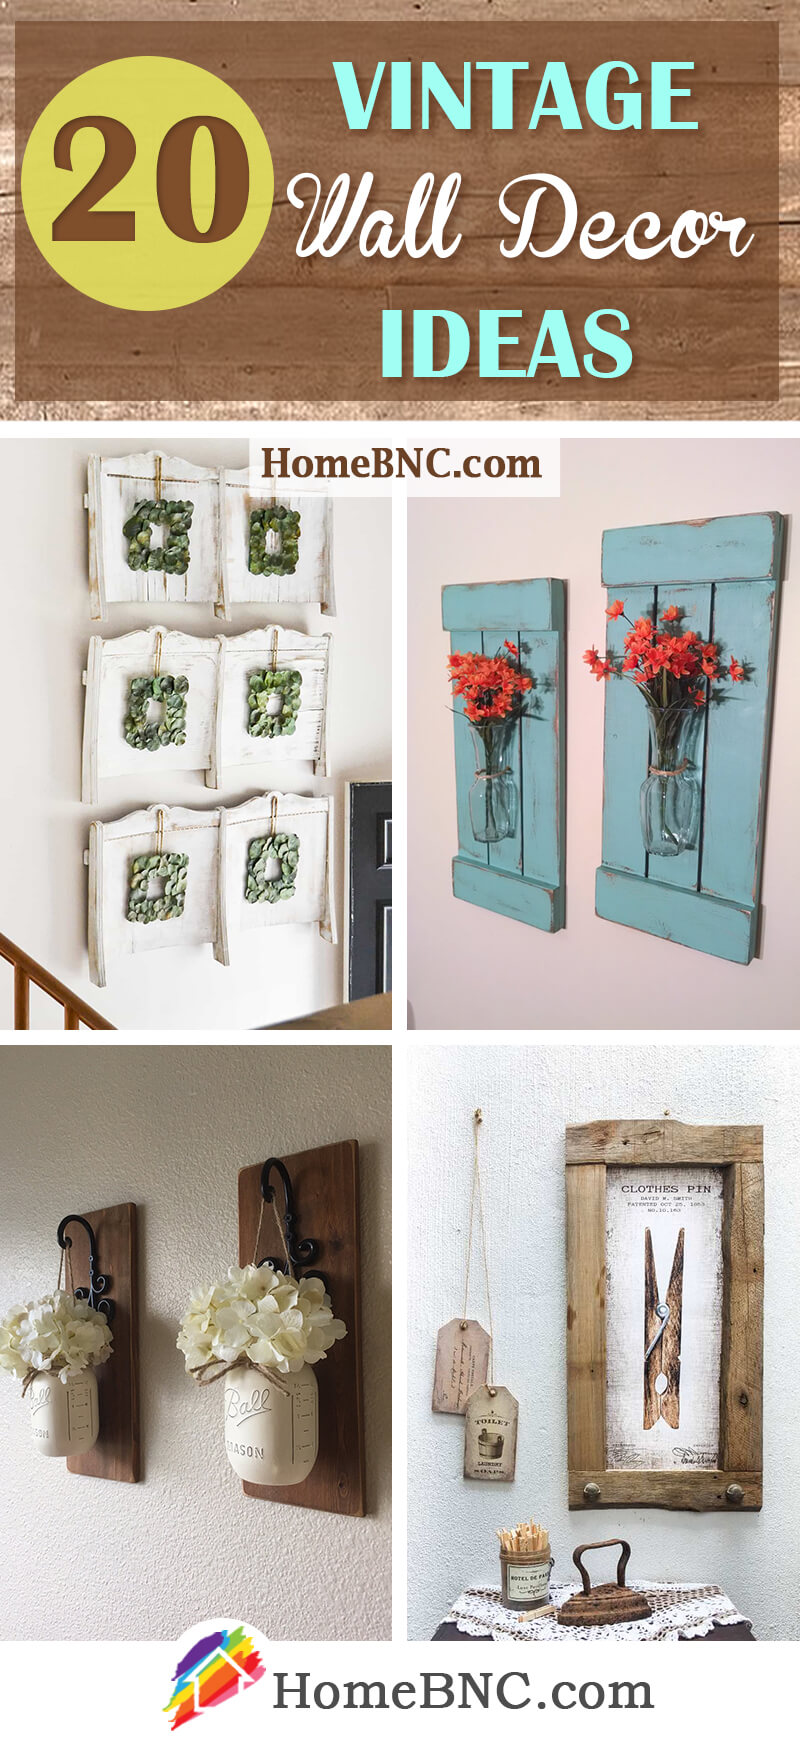 Vintage Wall Decor Ideas